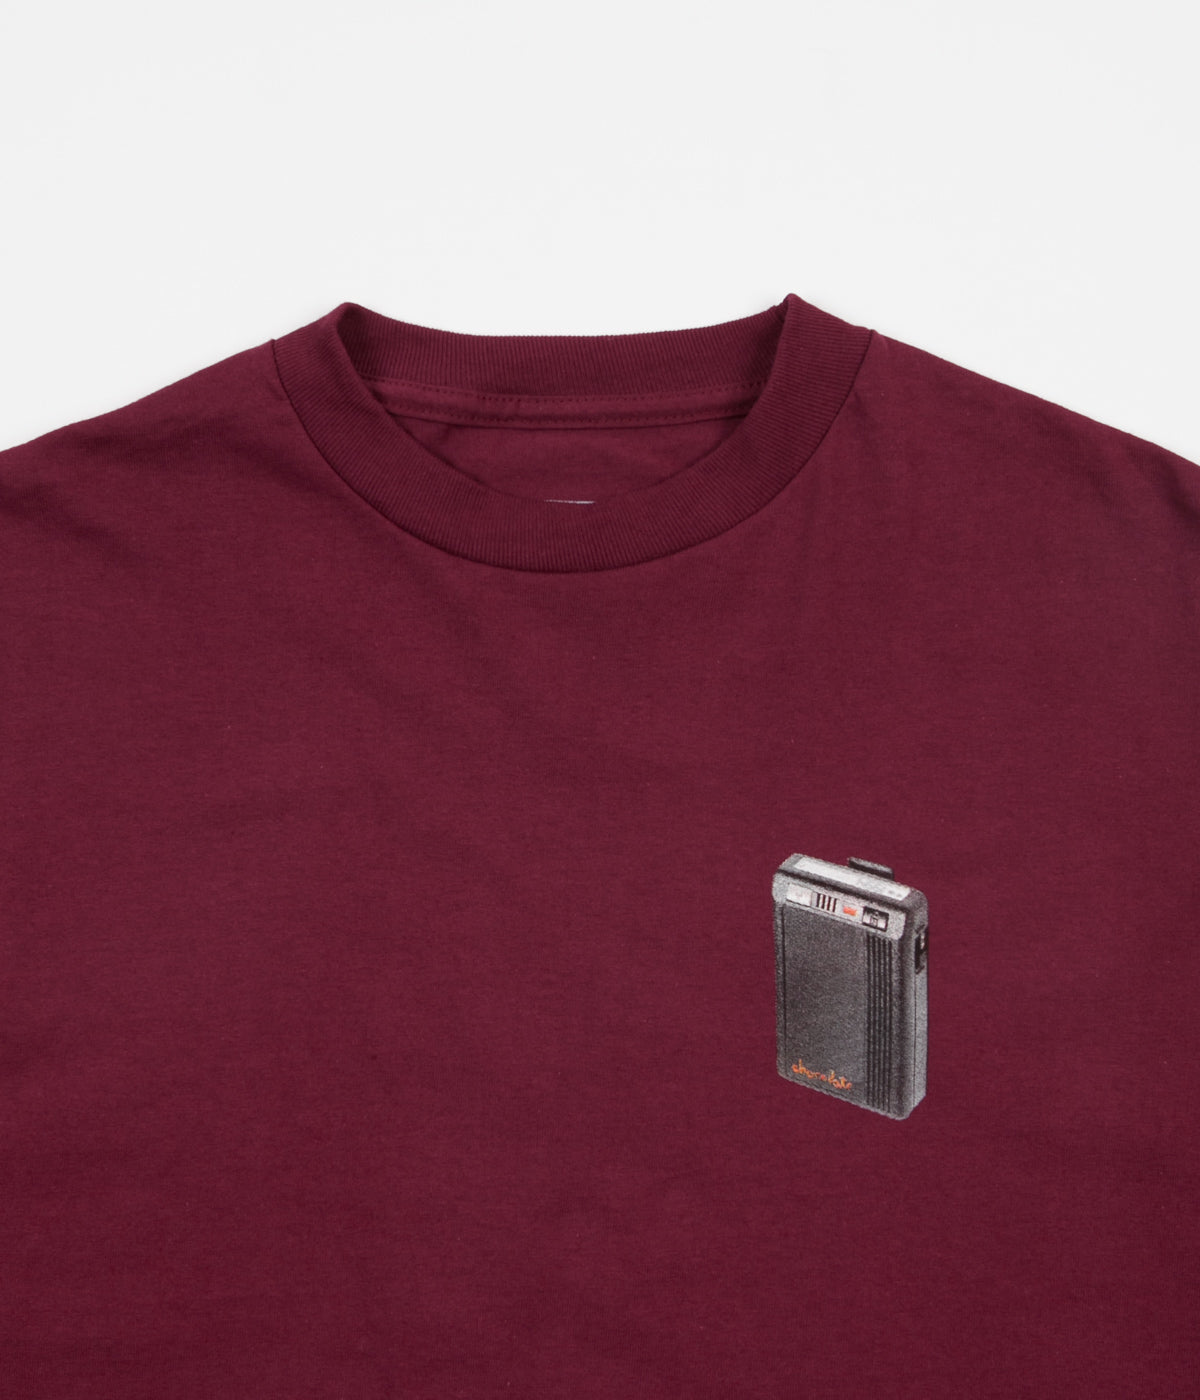 Chocolate Beeper Long Sleeve T-Shirt - Burgundy